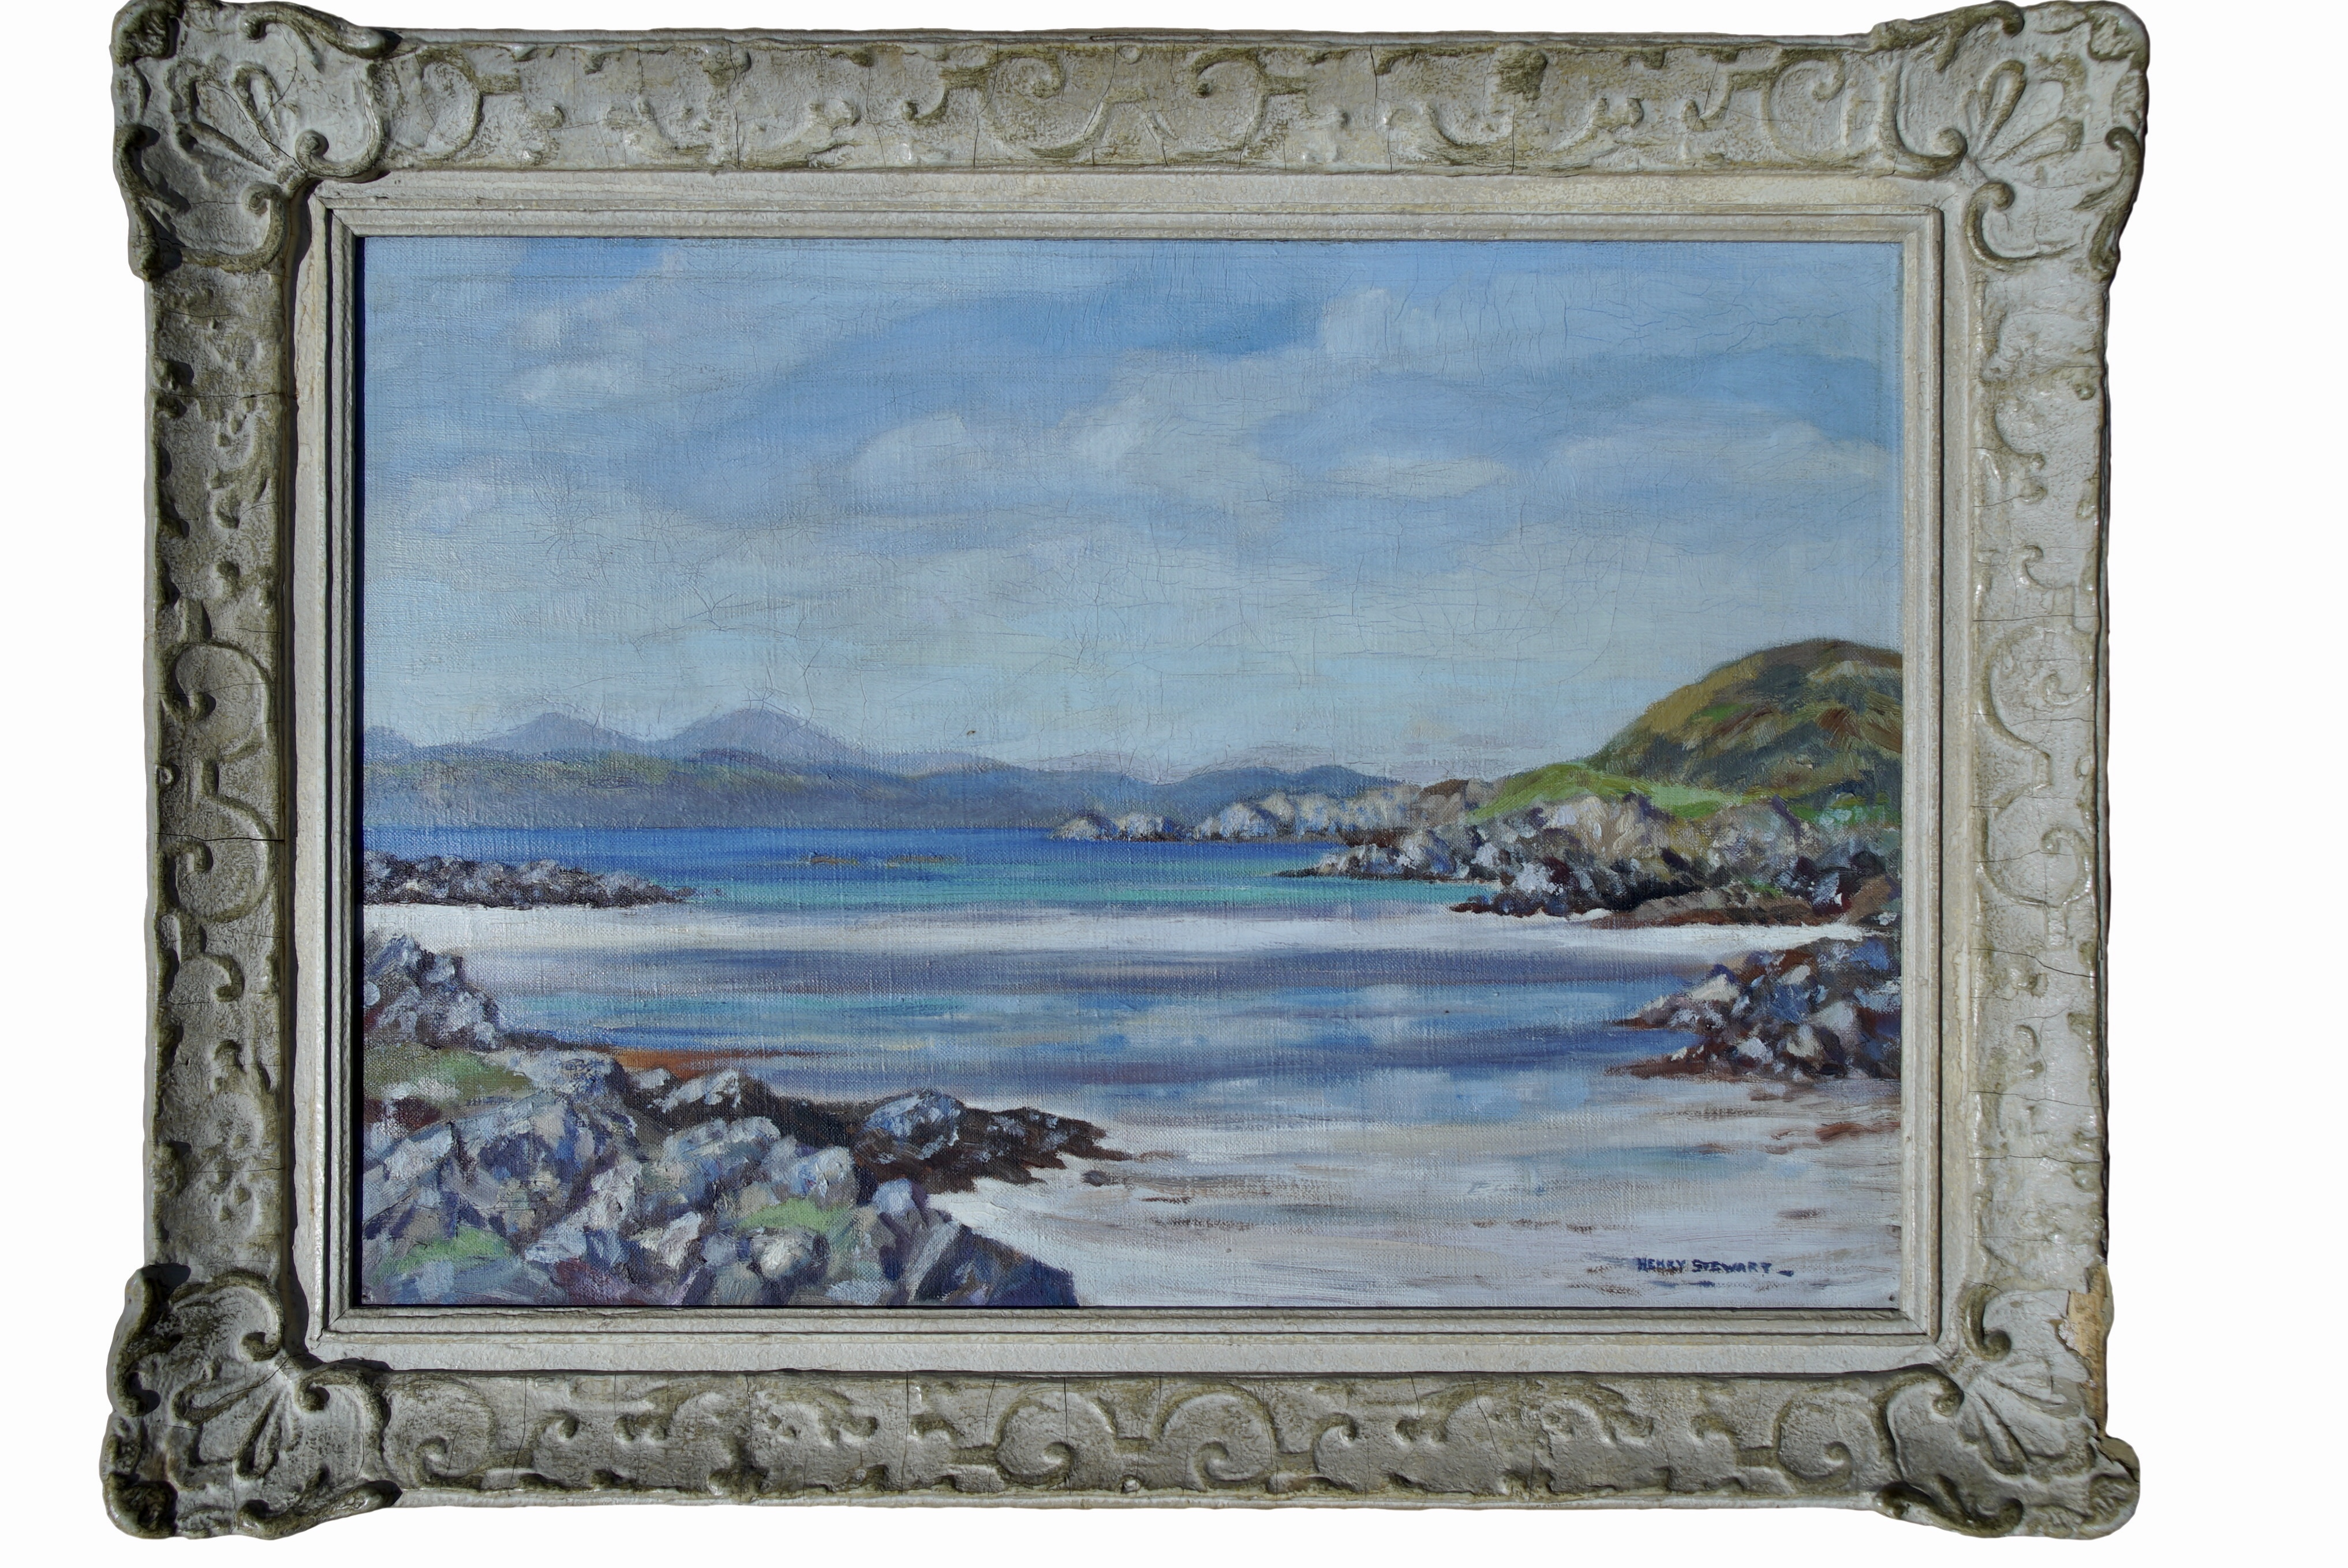 HENRY STEWART (Scottish), The Paps of Jura, Signed Oil Painting